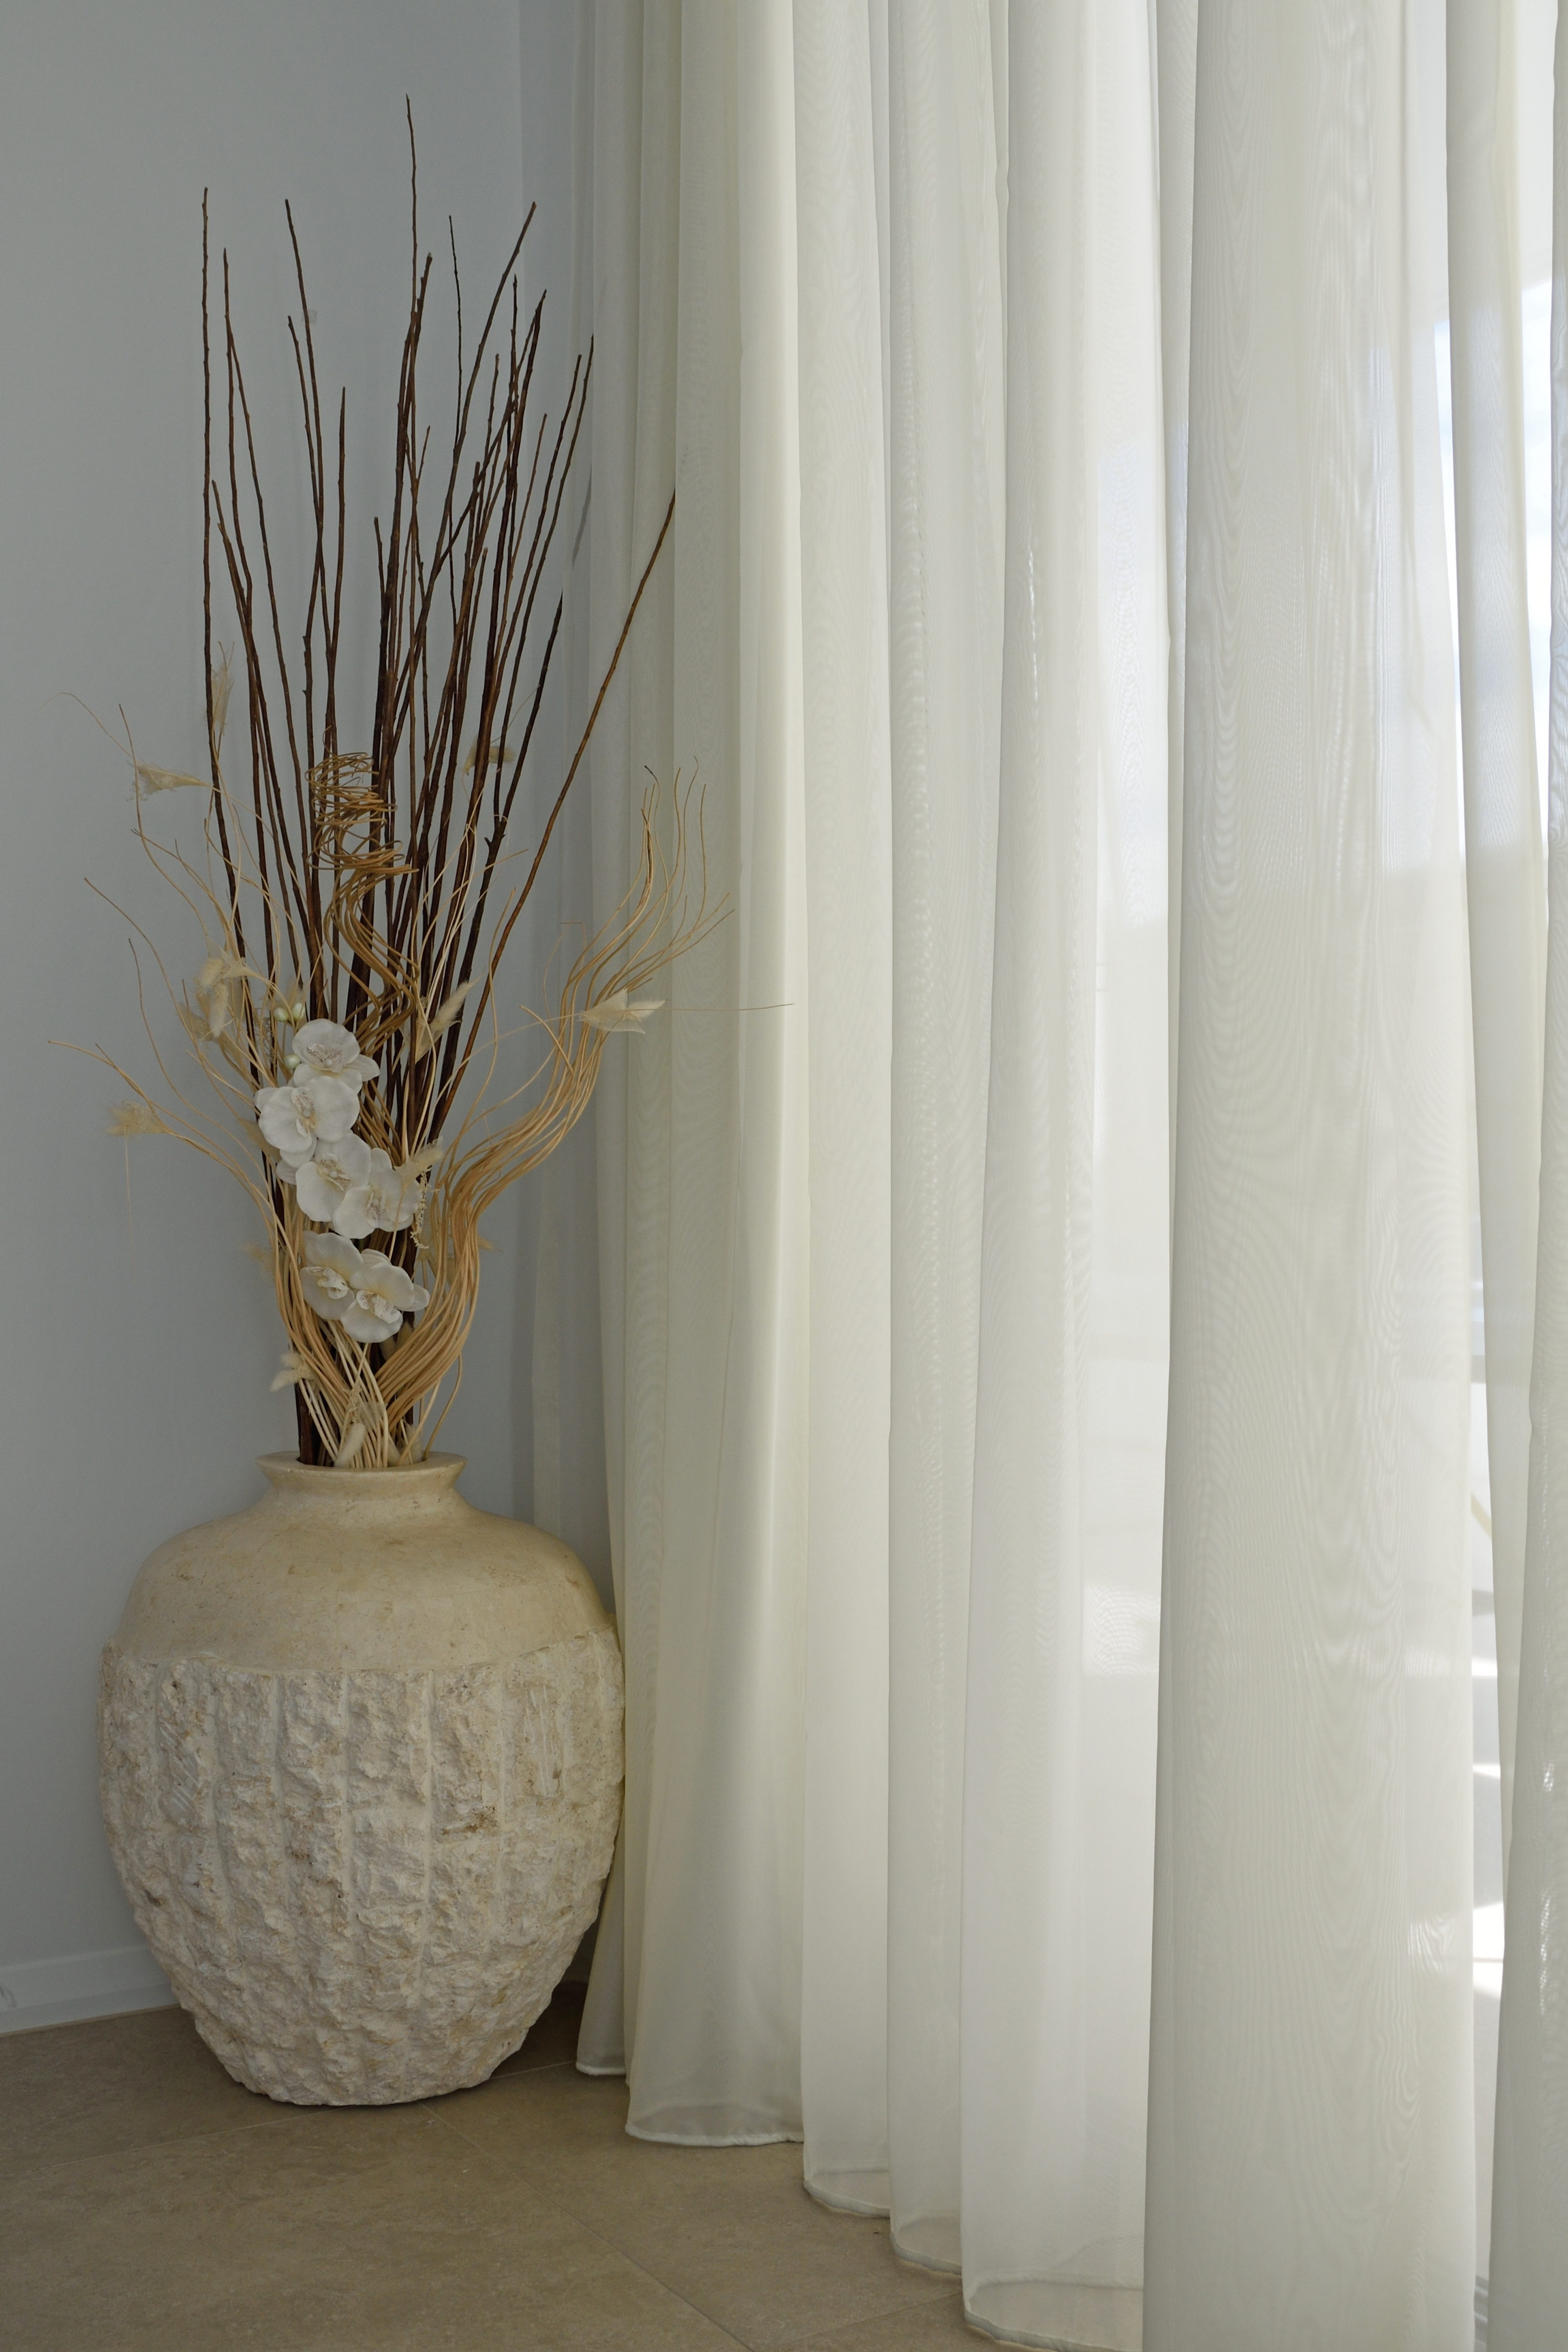 Inverted pleat sheer from ceiling with vase